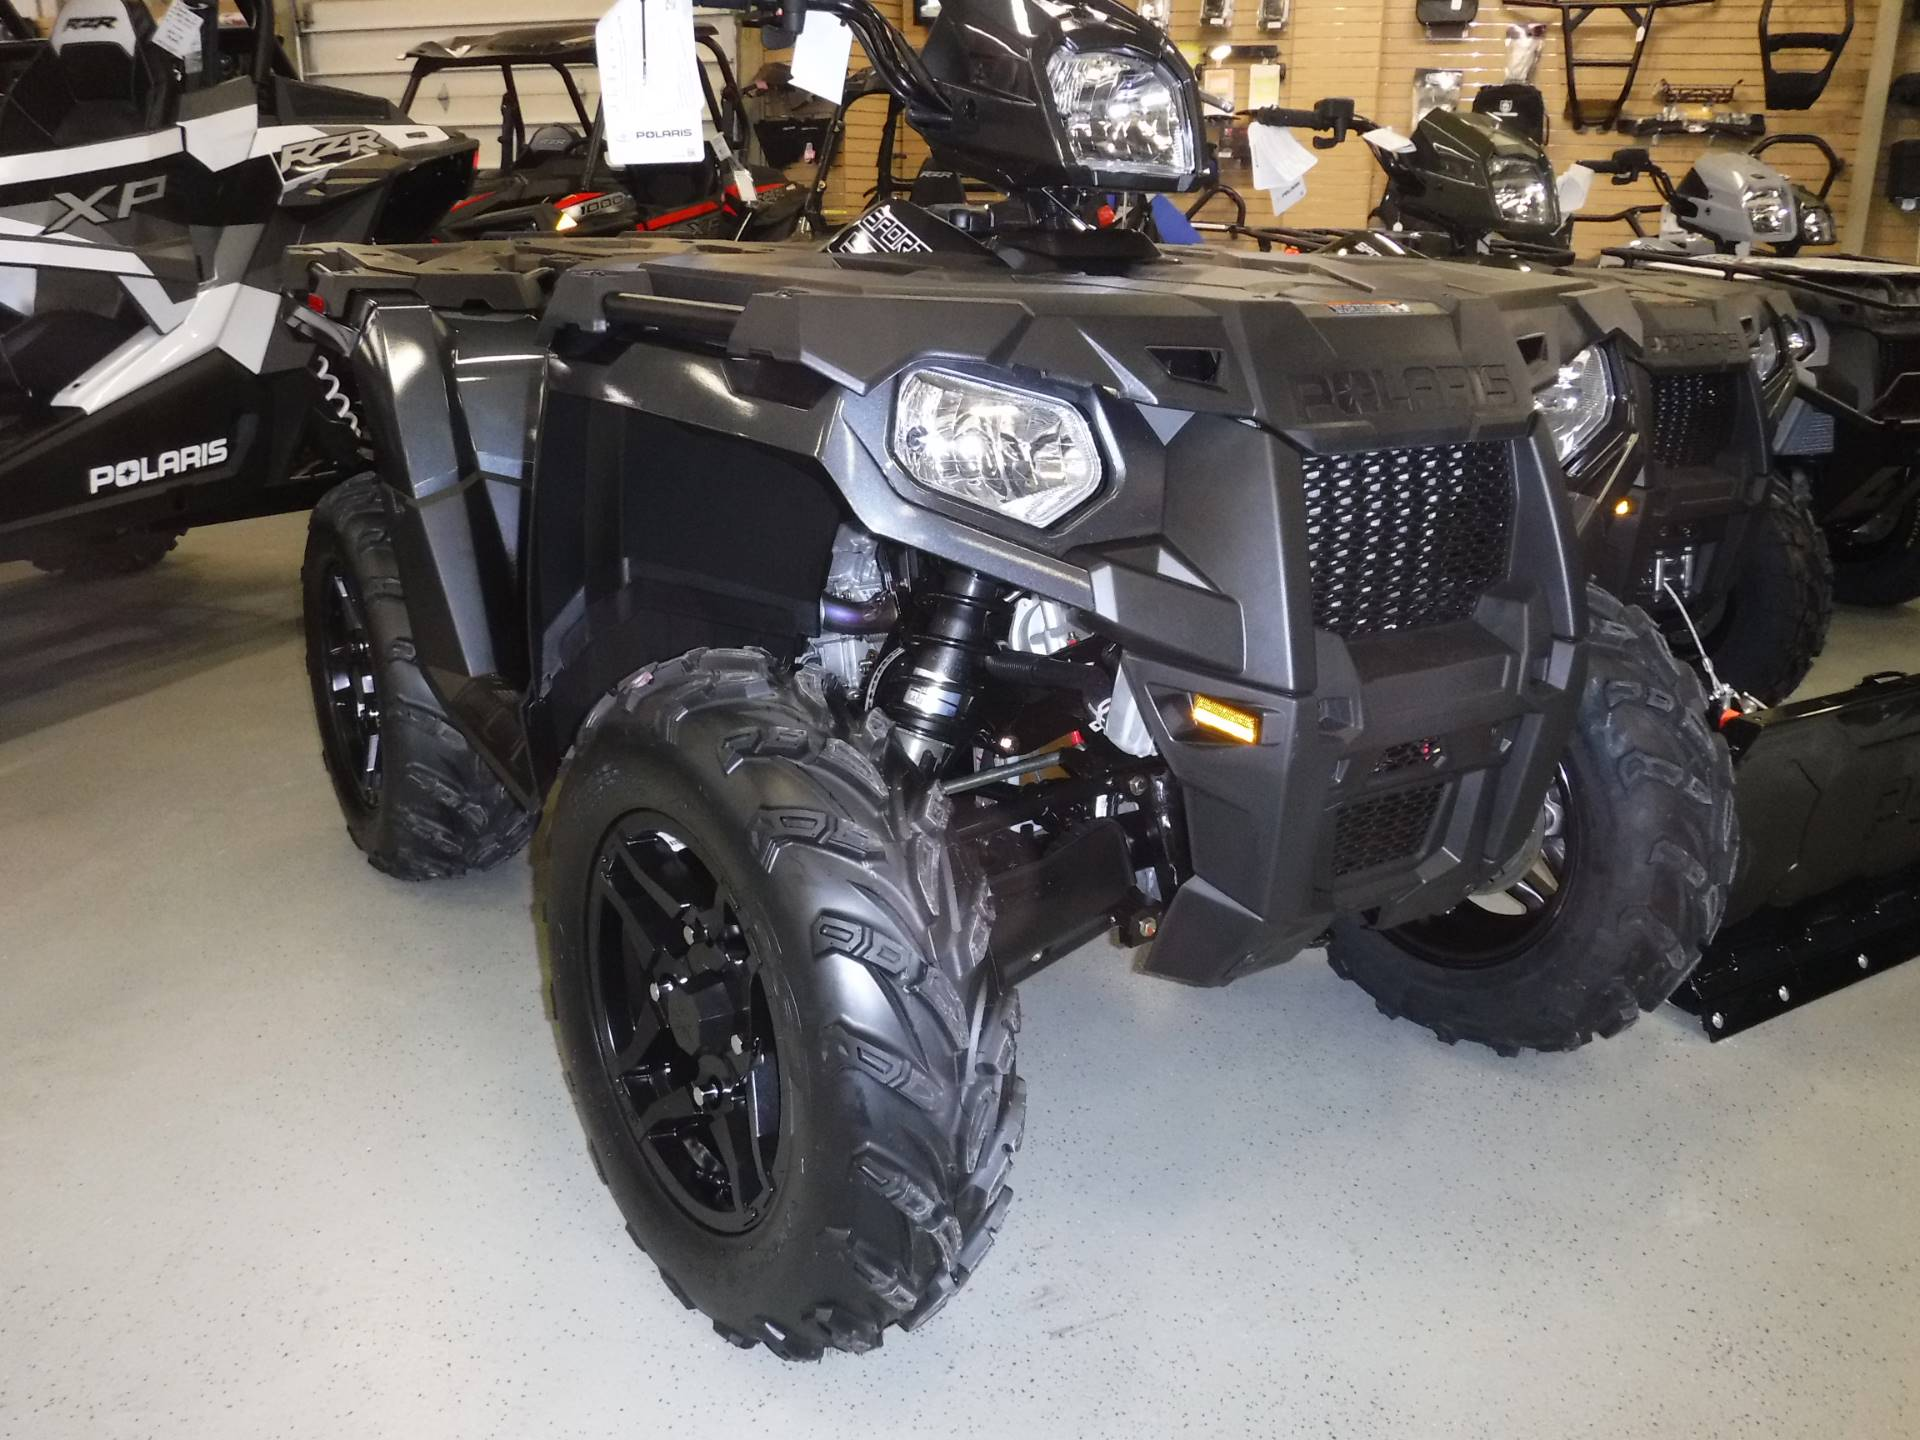 2019 Polaris Sportsman 570 SP in Hermitage, Pennsylvania - Photo 1